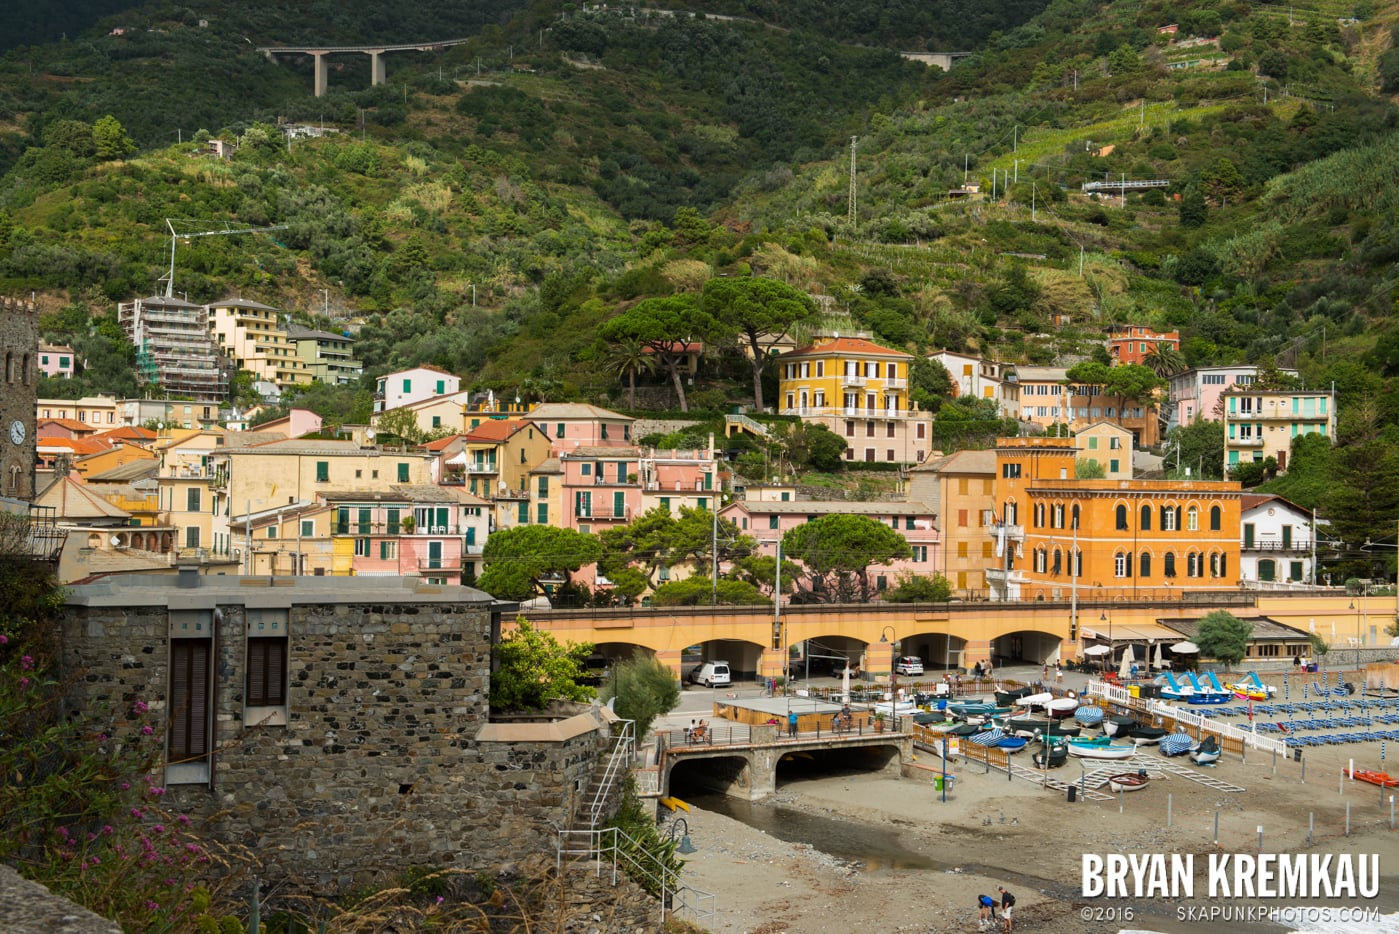 Italy Vacation - Day 10: Cinque Terre - 9.18.13 (21)